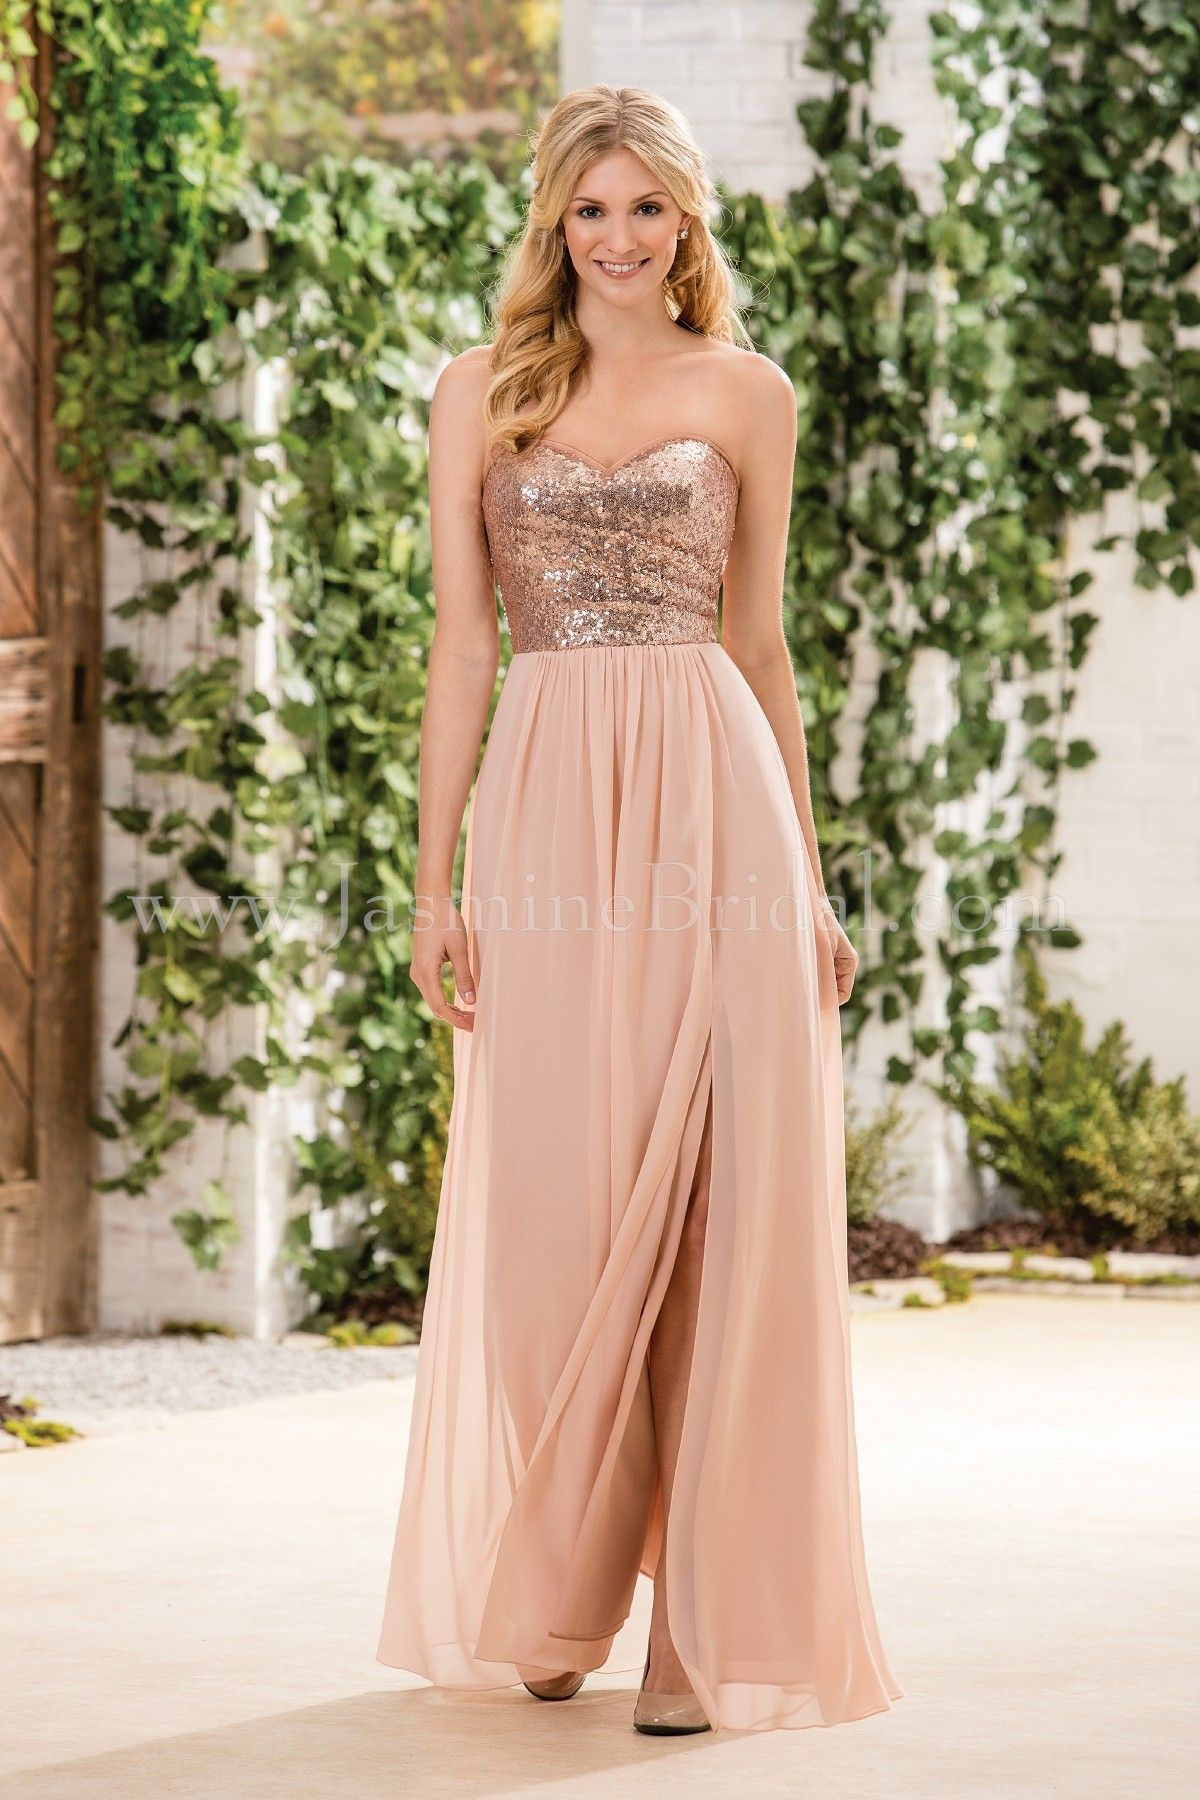 Jasmine bridal bridesmaid dress b2 style b183064 in rose goldpeach jasmine bridal ombrellifo Images